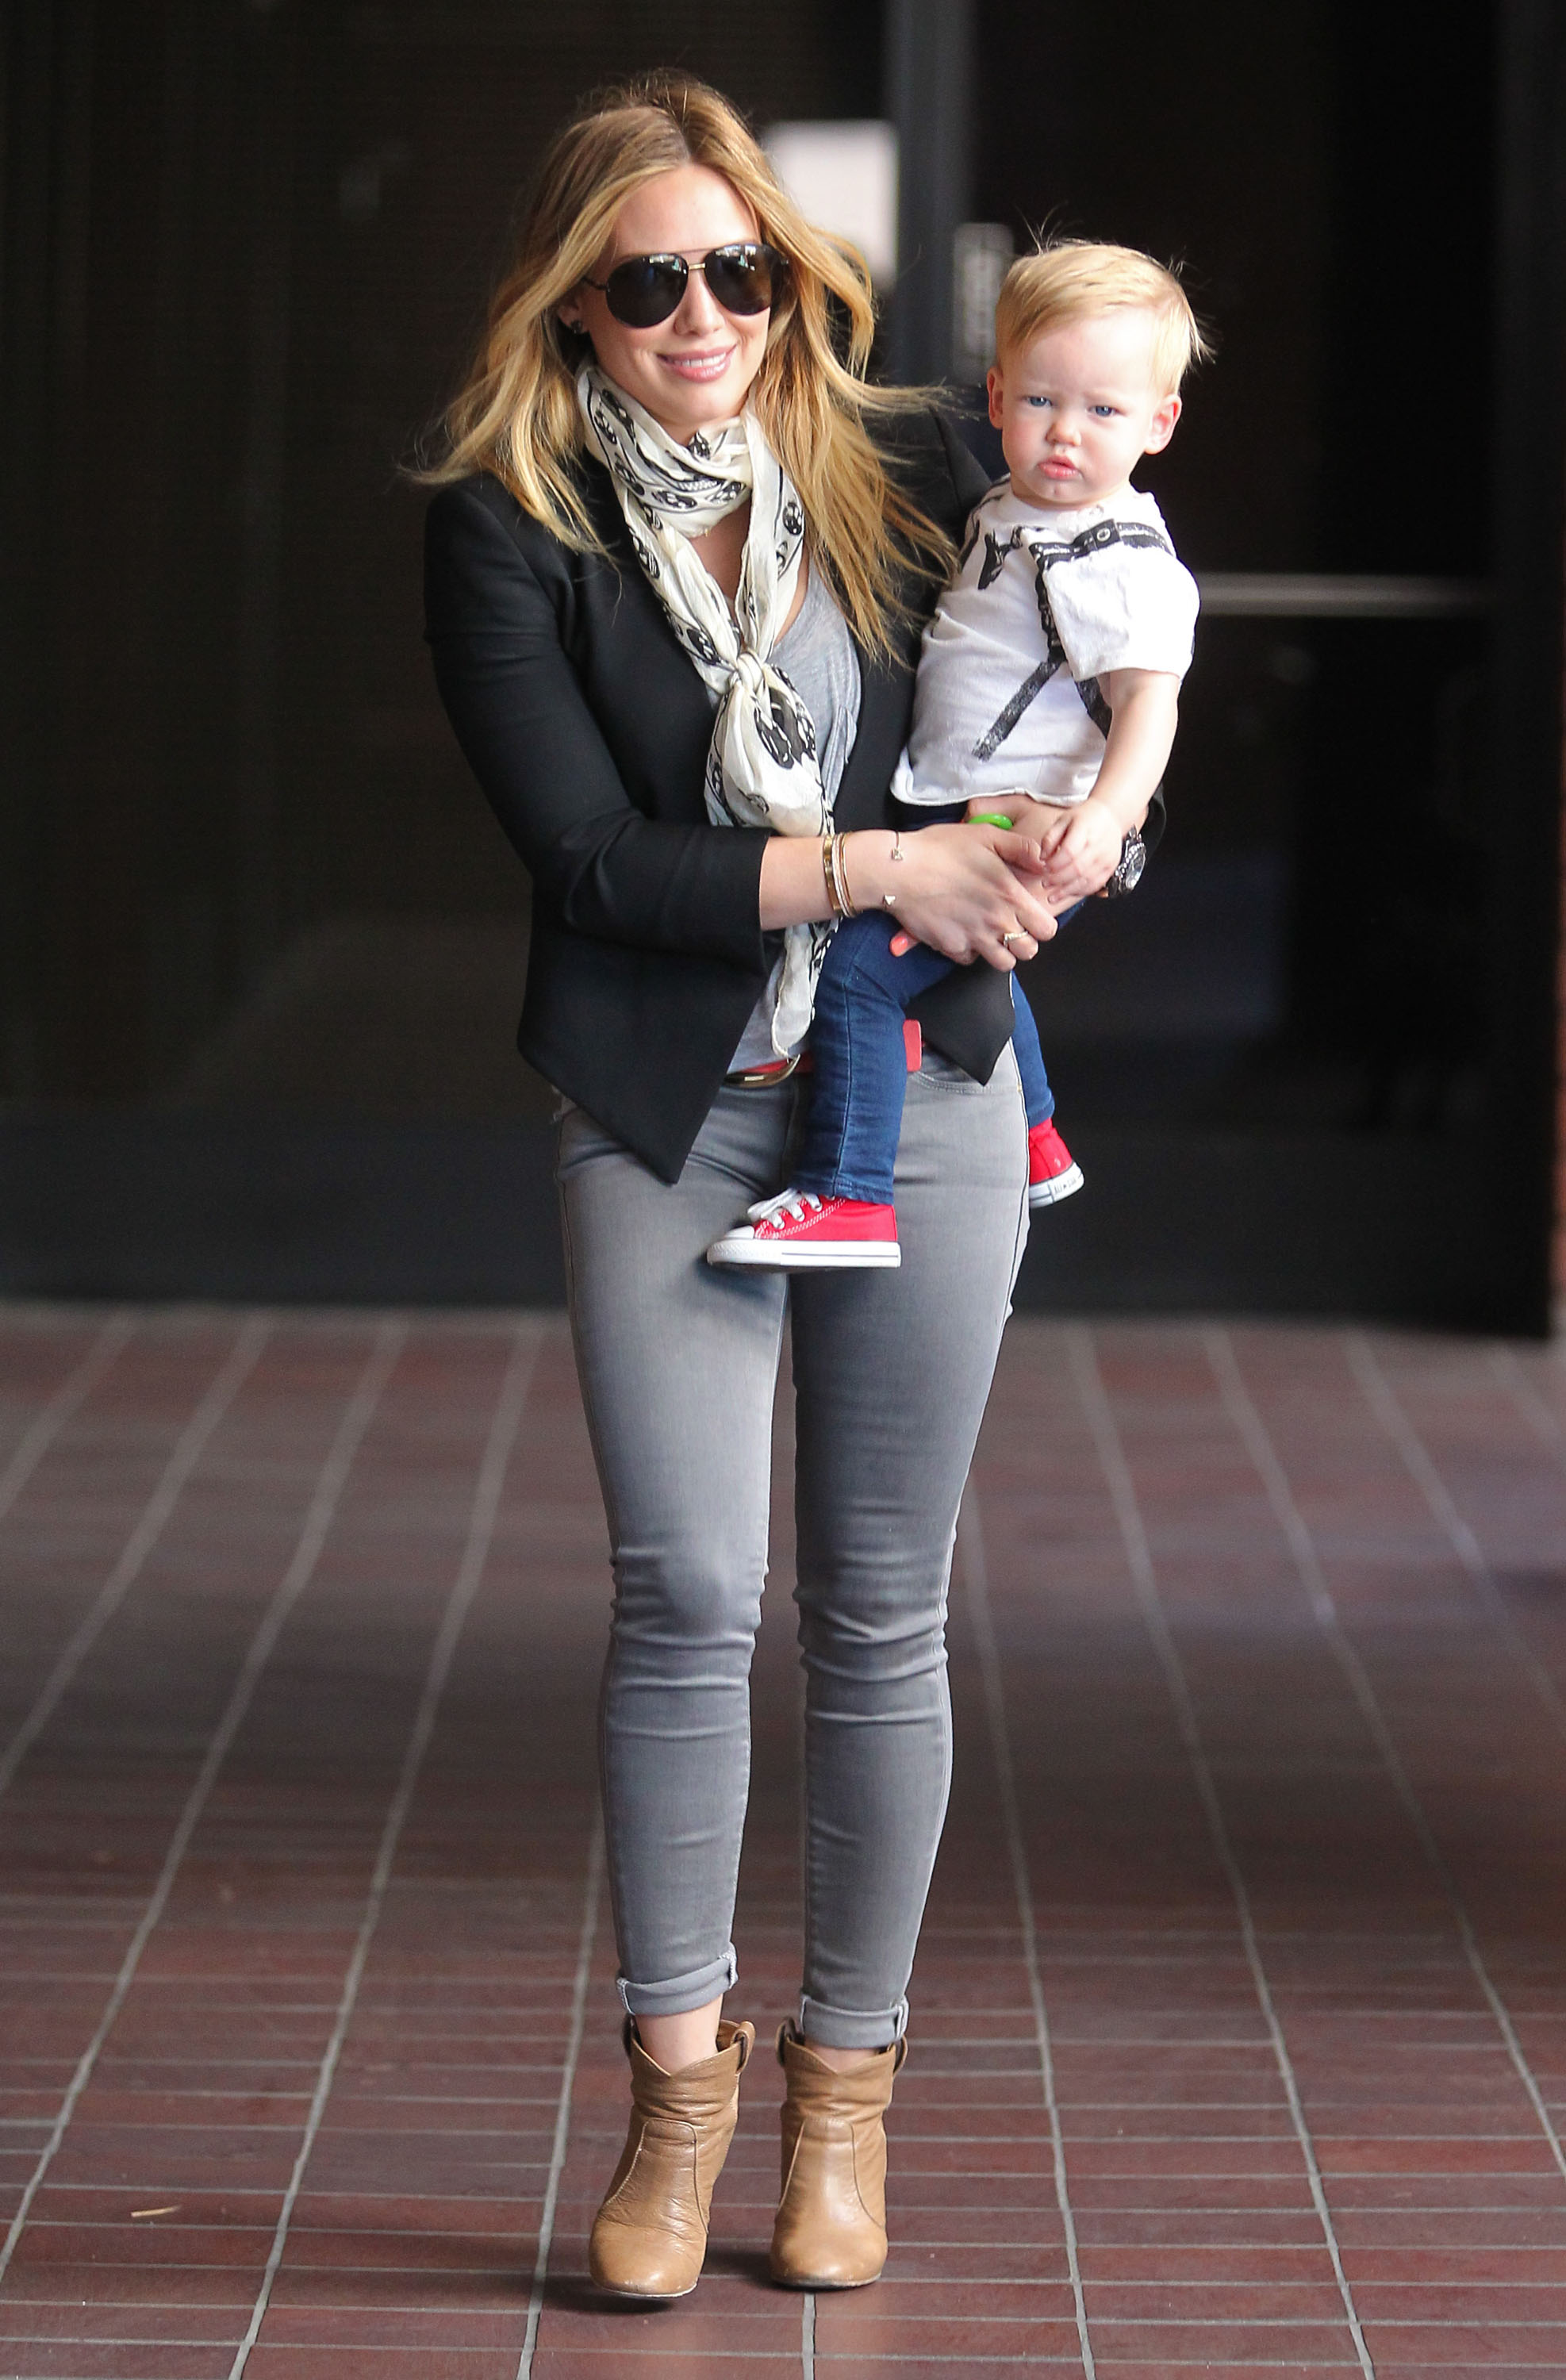 Get the Look: Hilary Duff's Grayscale Spring Look